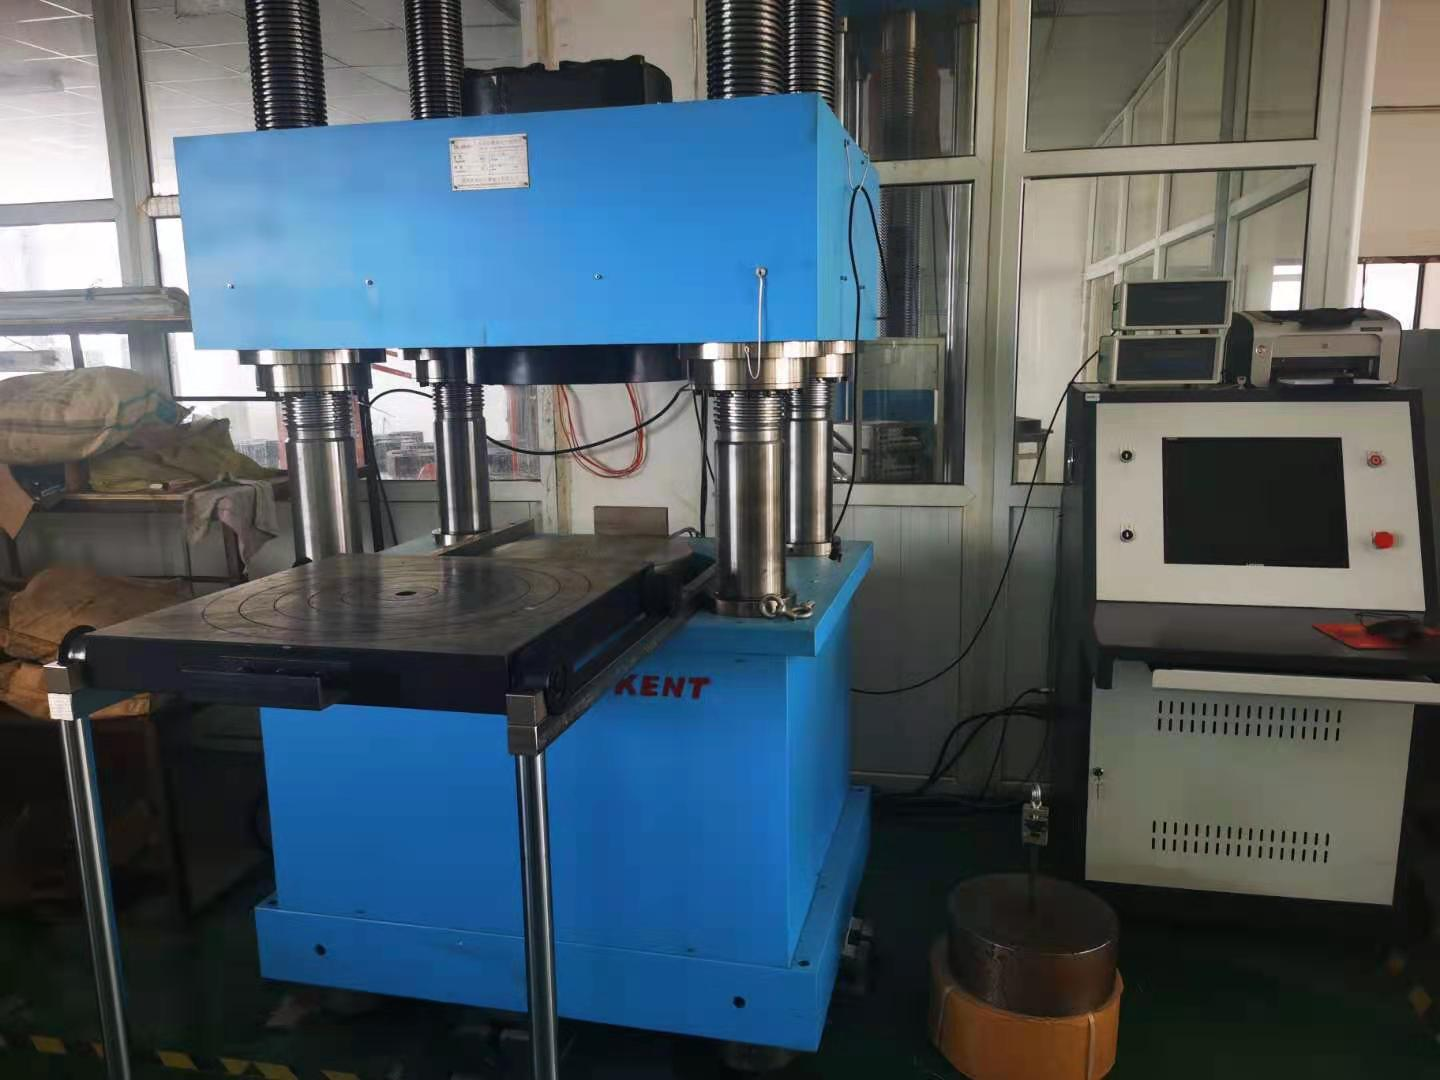 Brand new 800T load cell calibration machine joins Zhimin production line